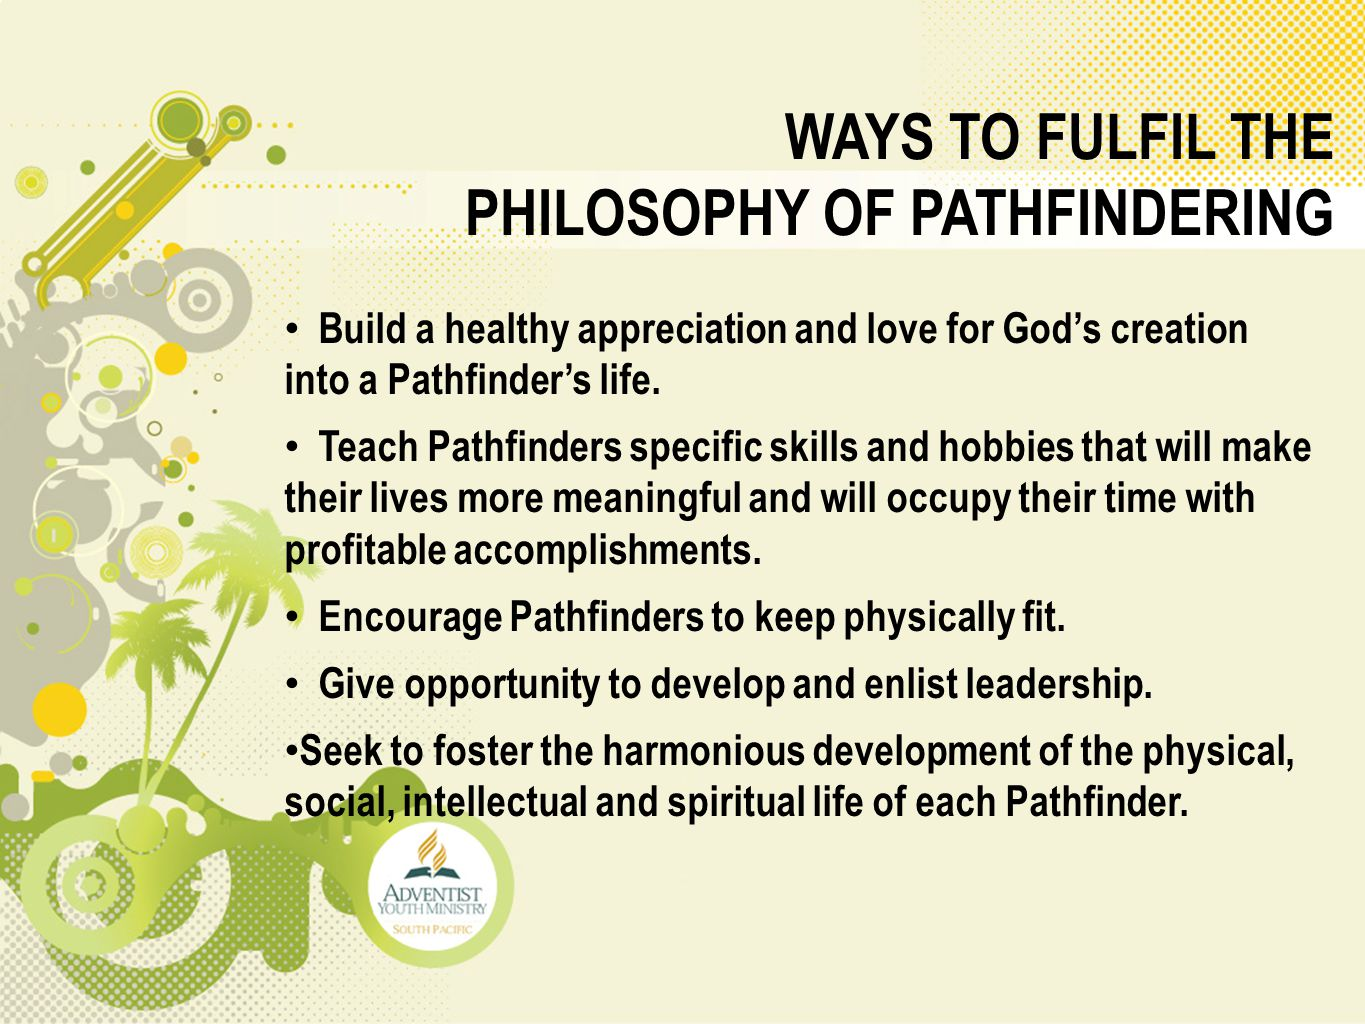 WAYS TO FULFIL THE PHILOSOPHY OF PATHFINDERING